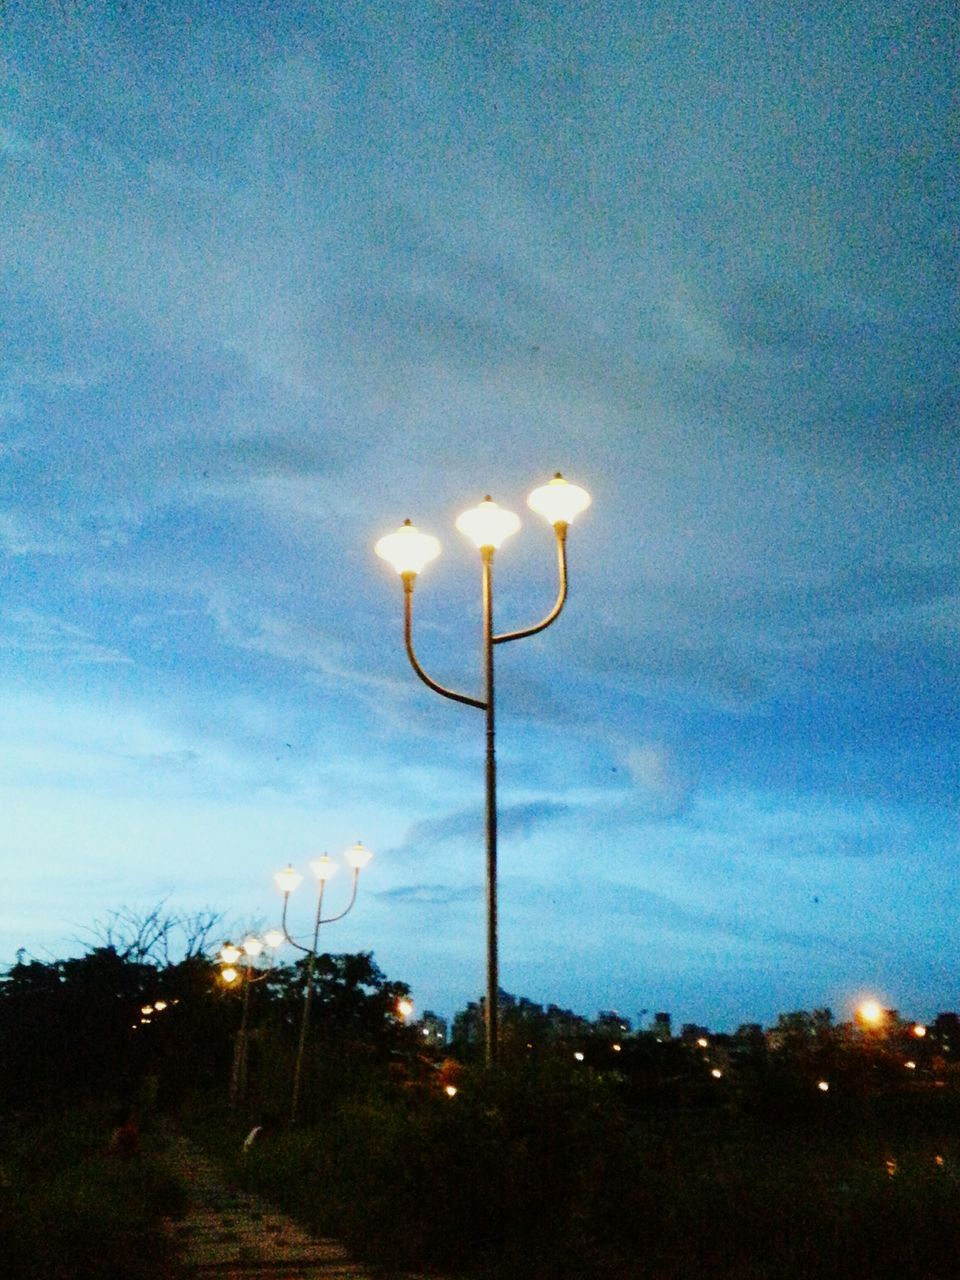 illuminated, lighting equipment, street light, night, dusk, sky, cloud - sky, no people, electricity, low angle view, outdoors, nature, blue, floodlight, beauty in nature, tree